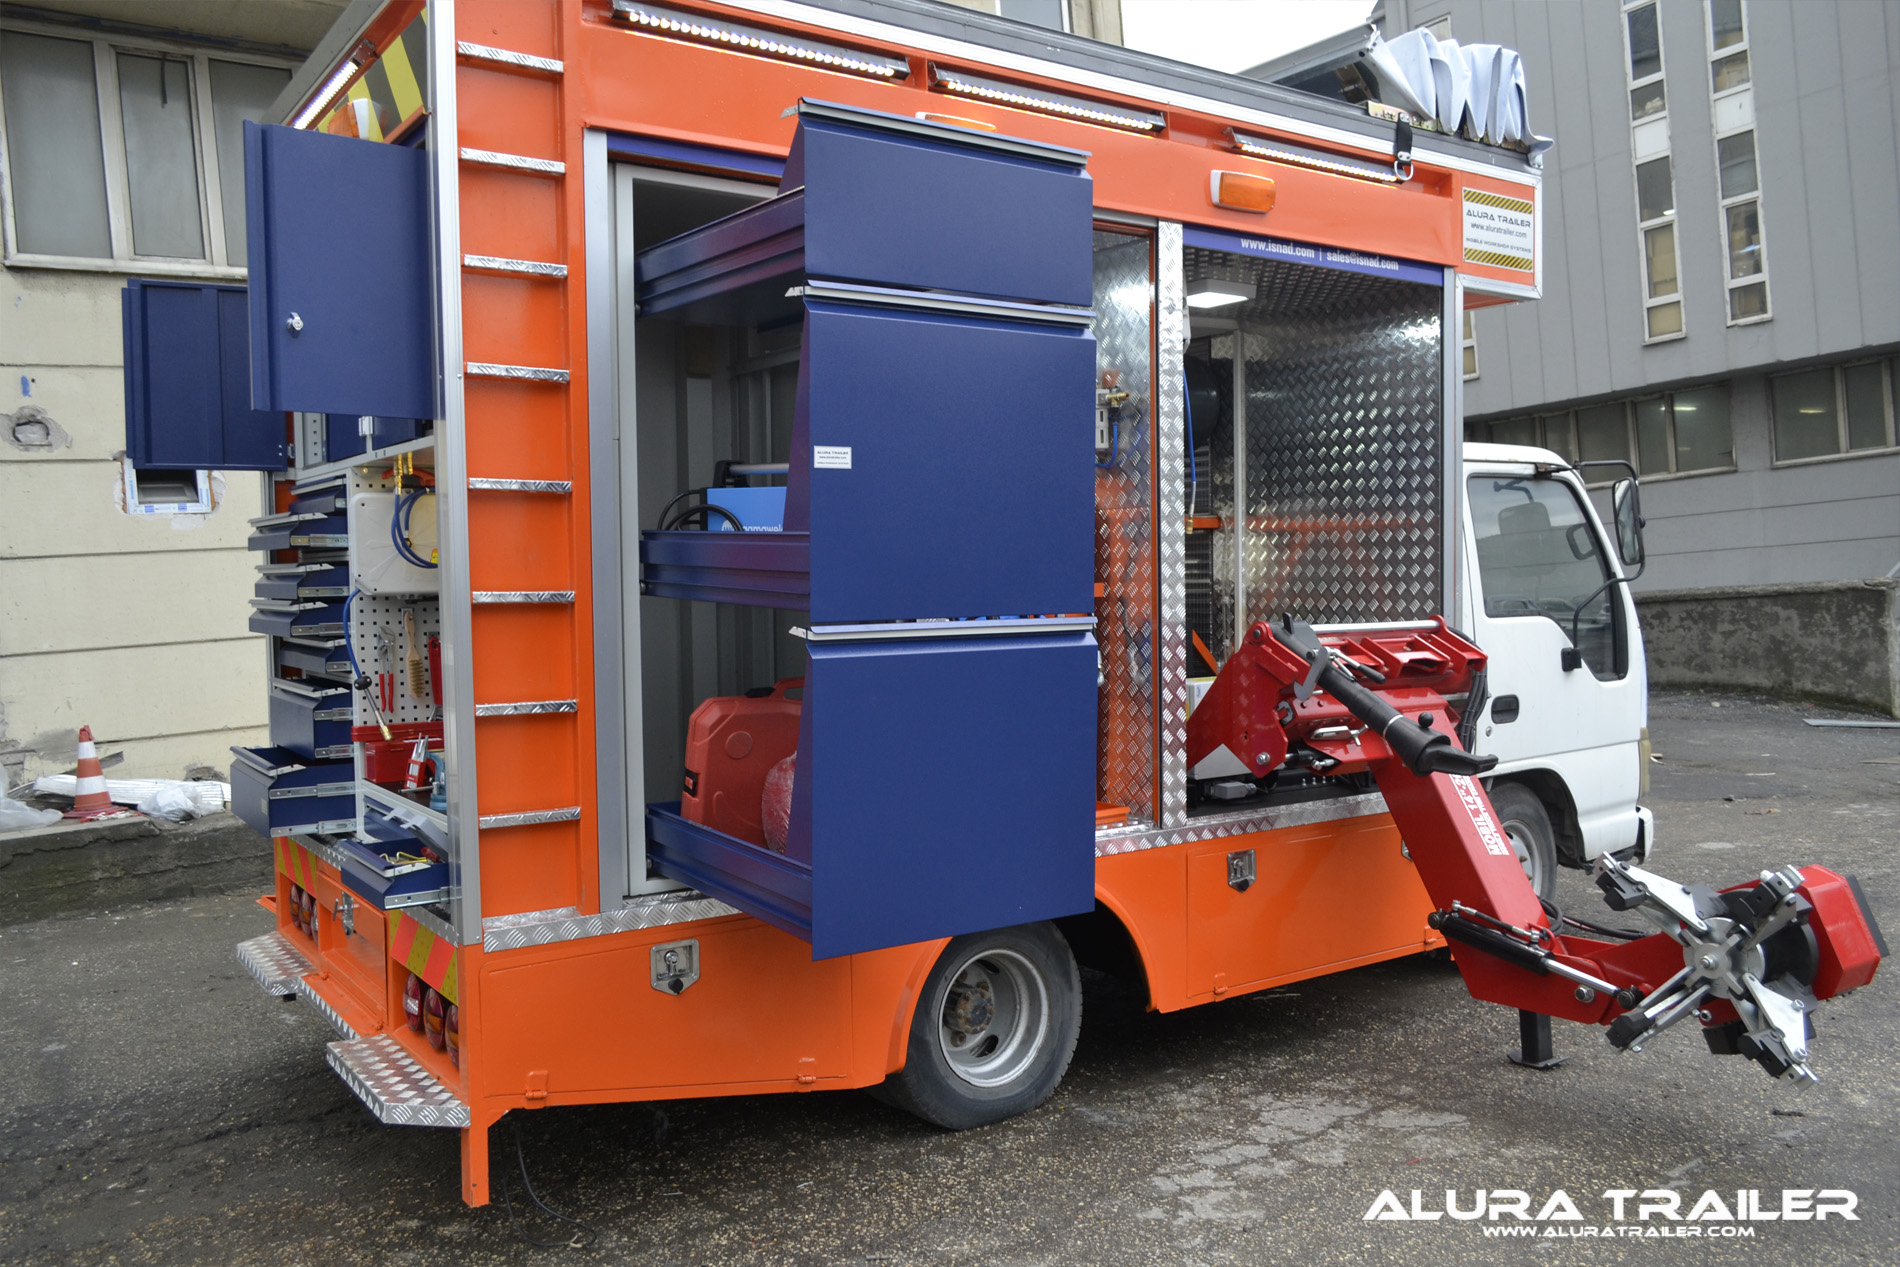 Alura Trailer - Turkey - Mobile Vehicles